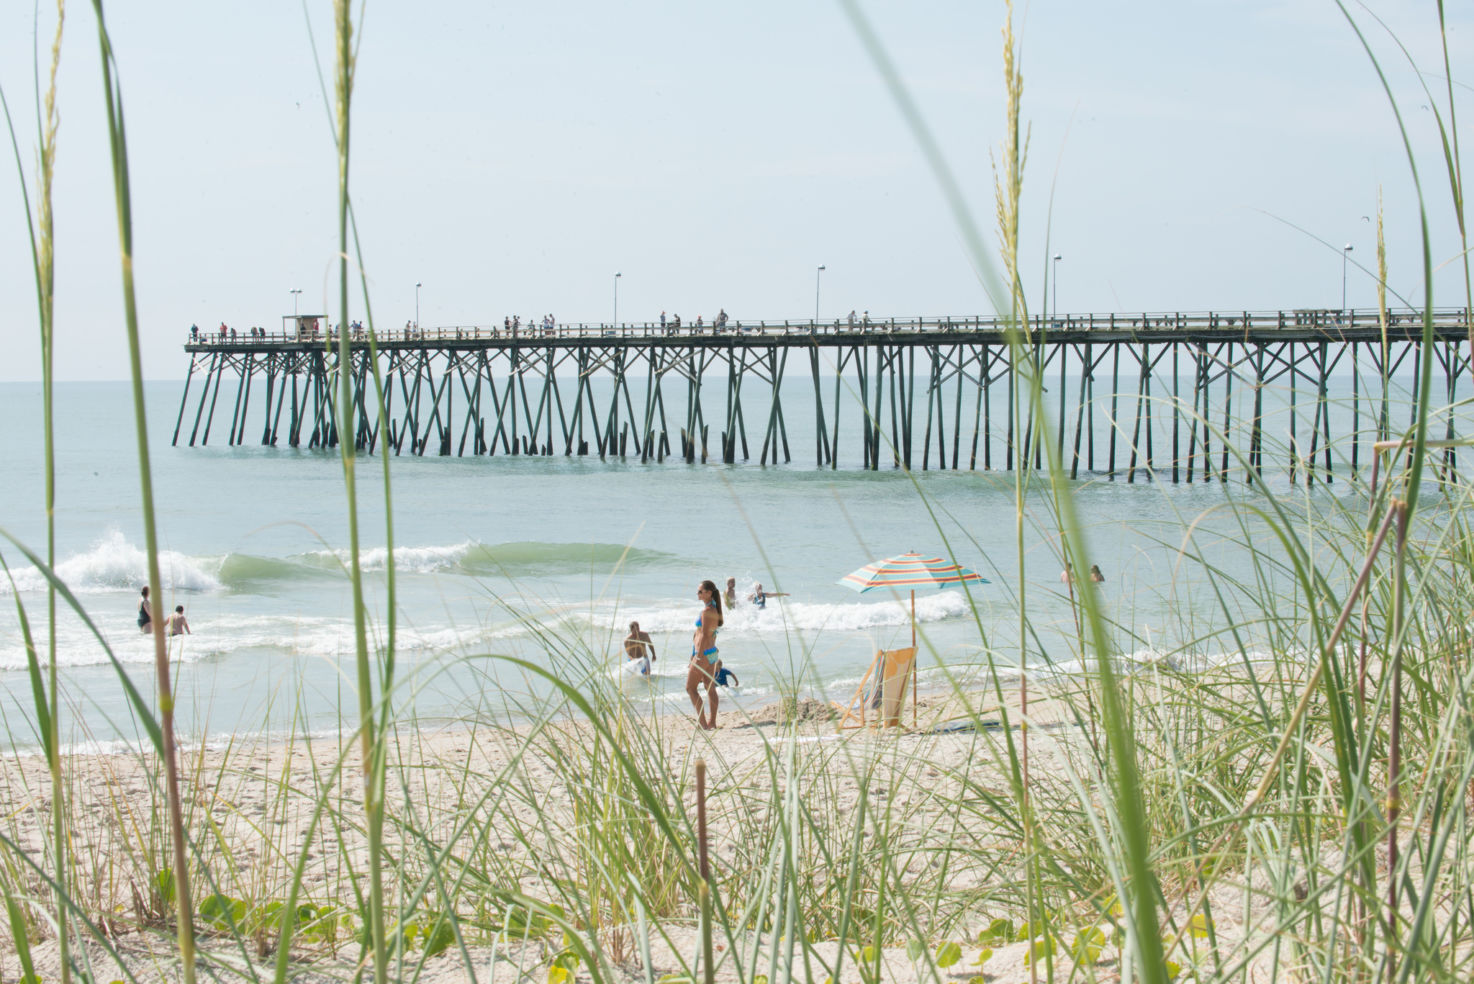 Kure Beach Pier, North Carolina.